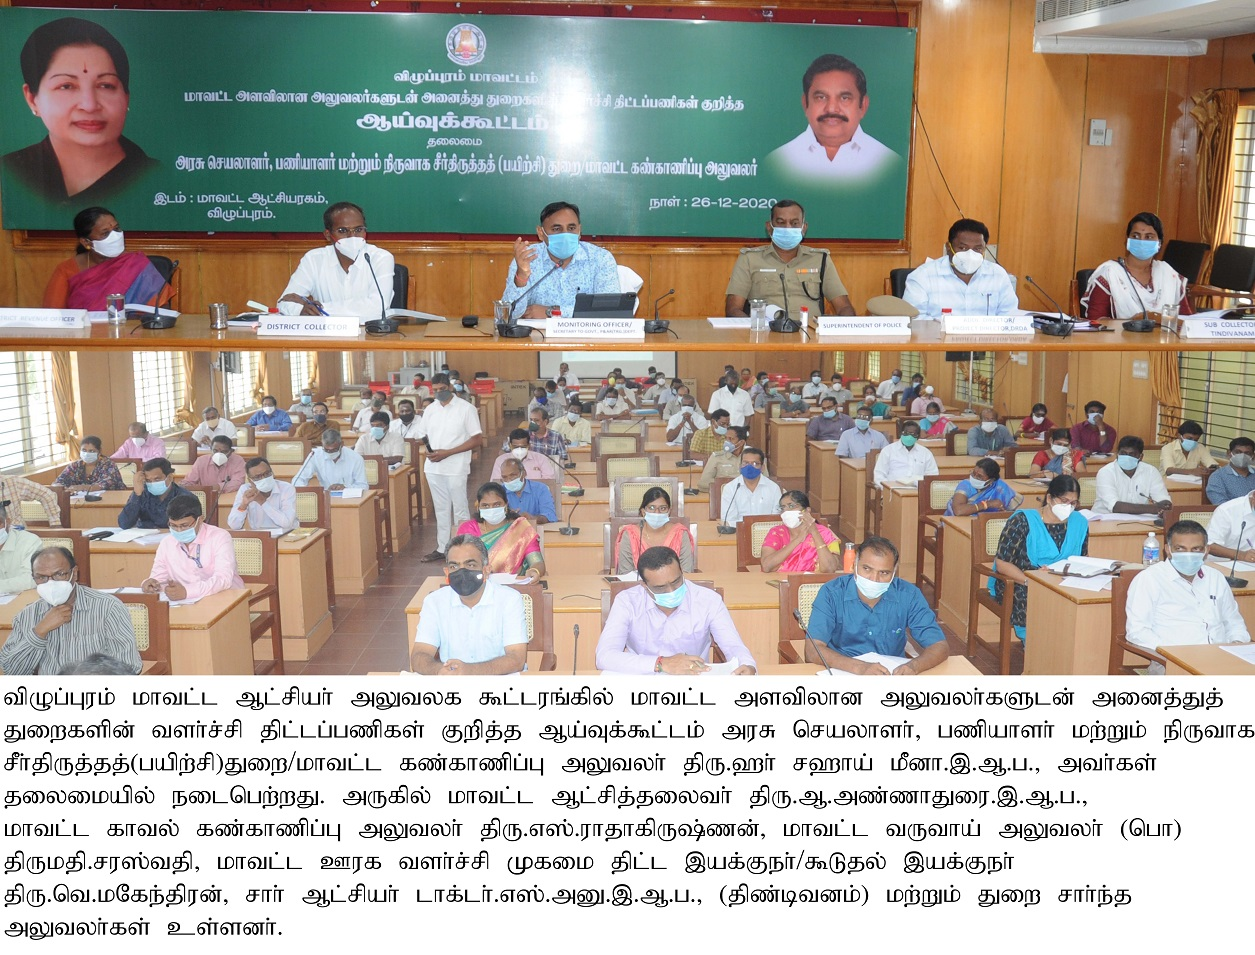 Monitoring Officer Review Meeting